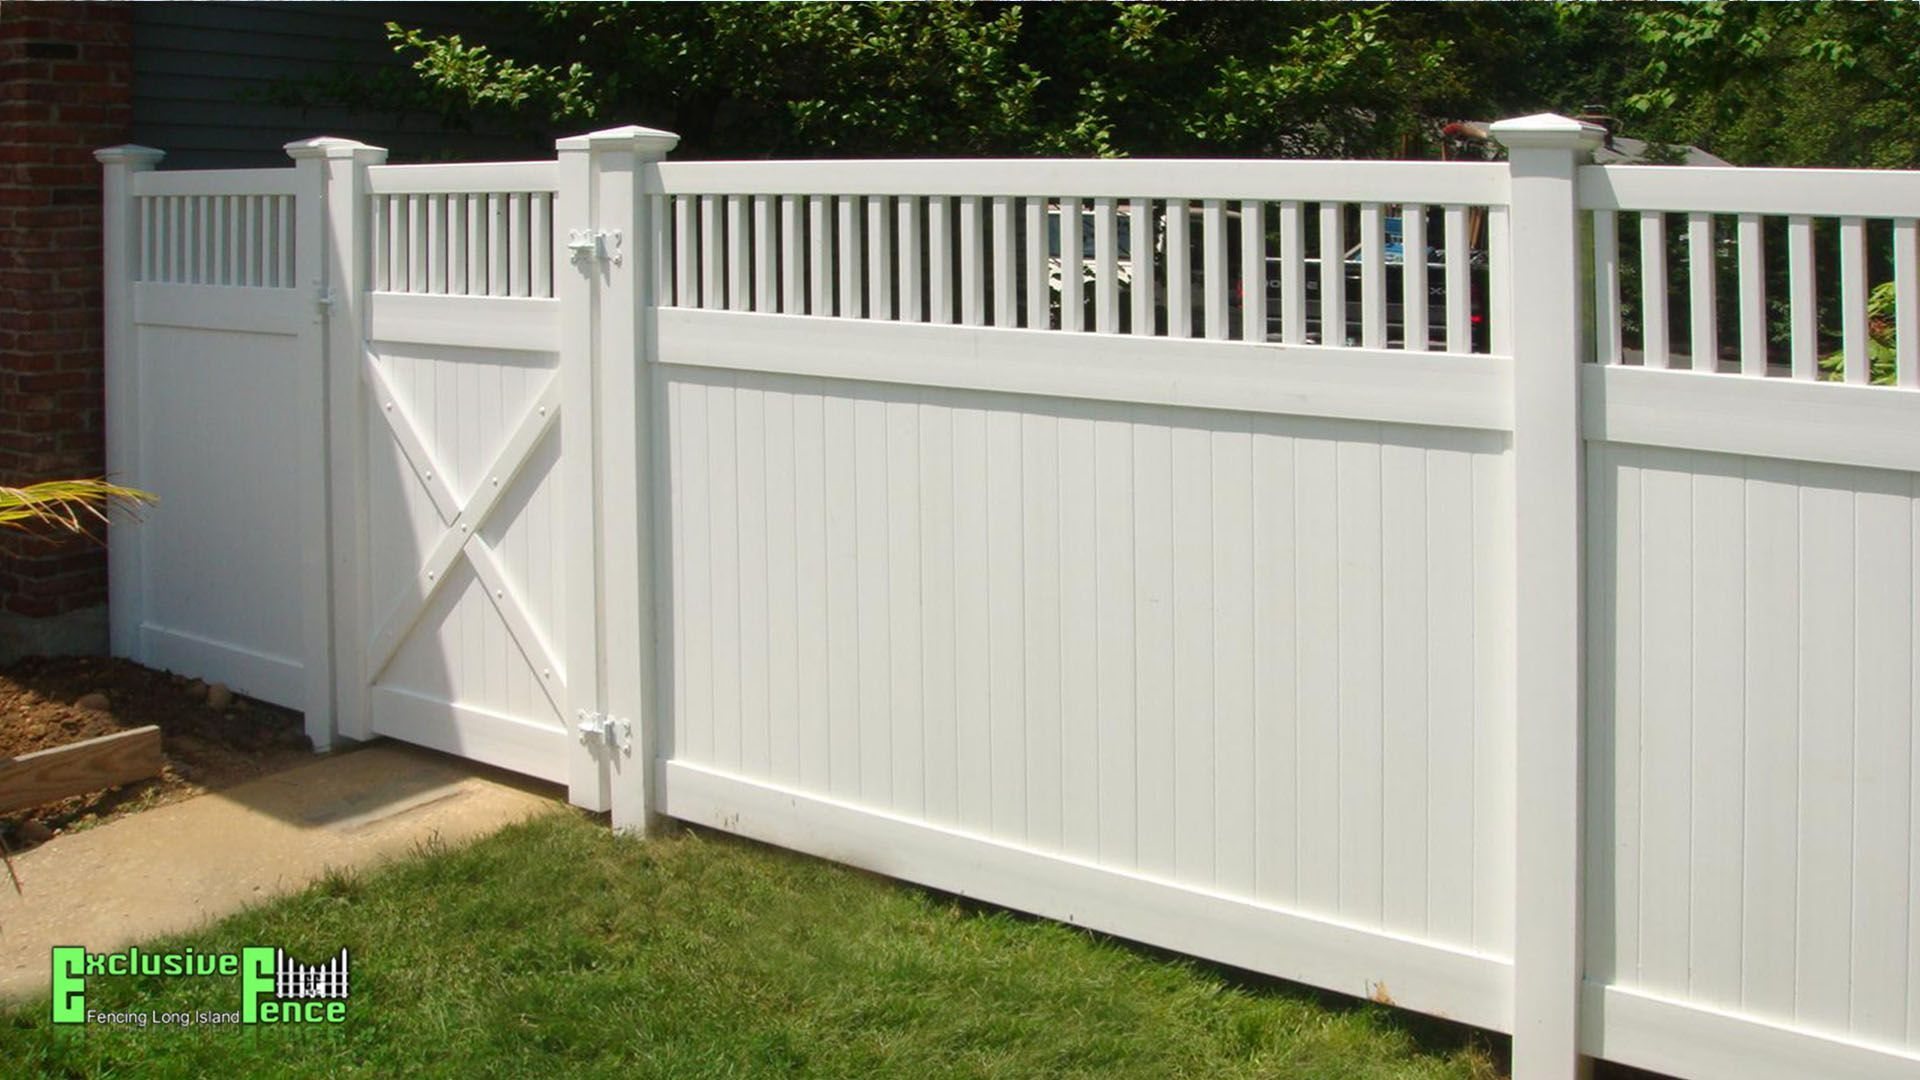 3 Daring Tips White Fence With Trees Fence Planters Morning Glories Vertical Fence Metal Picket Fence Edging Vinyl Fence Vinyl Fence Panels White Vinyl Fence